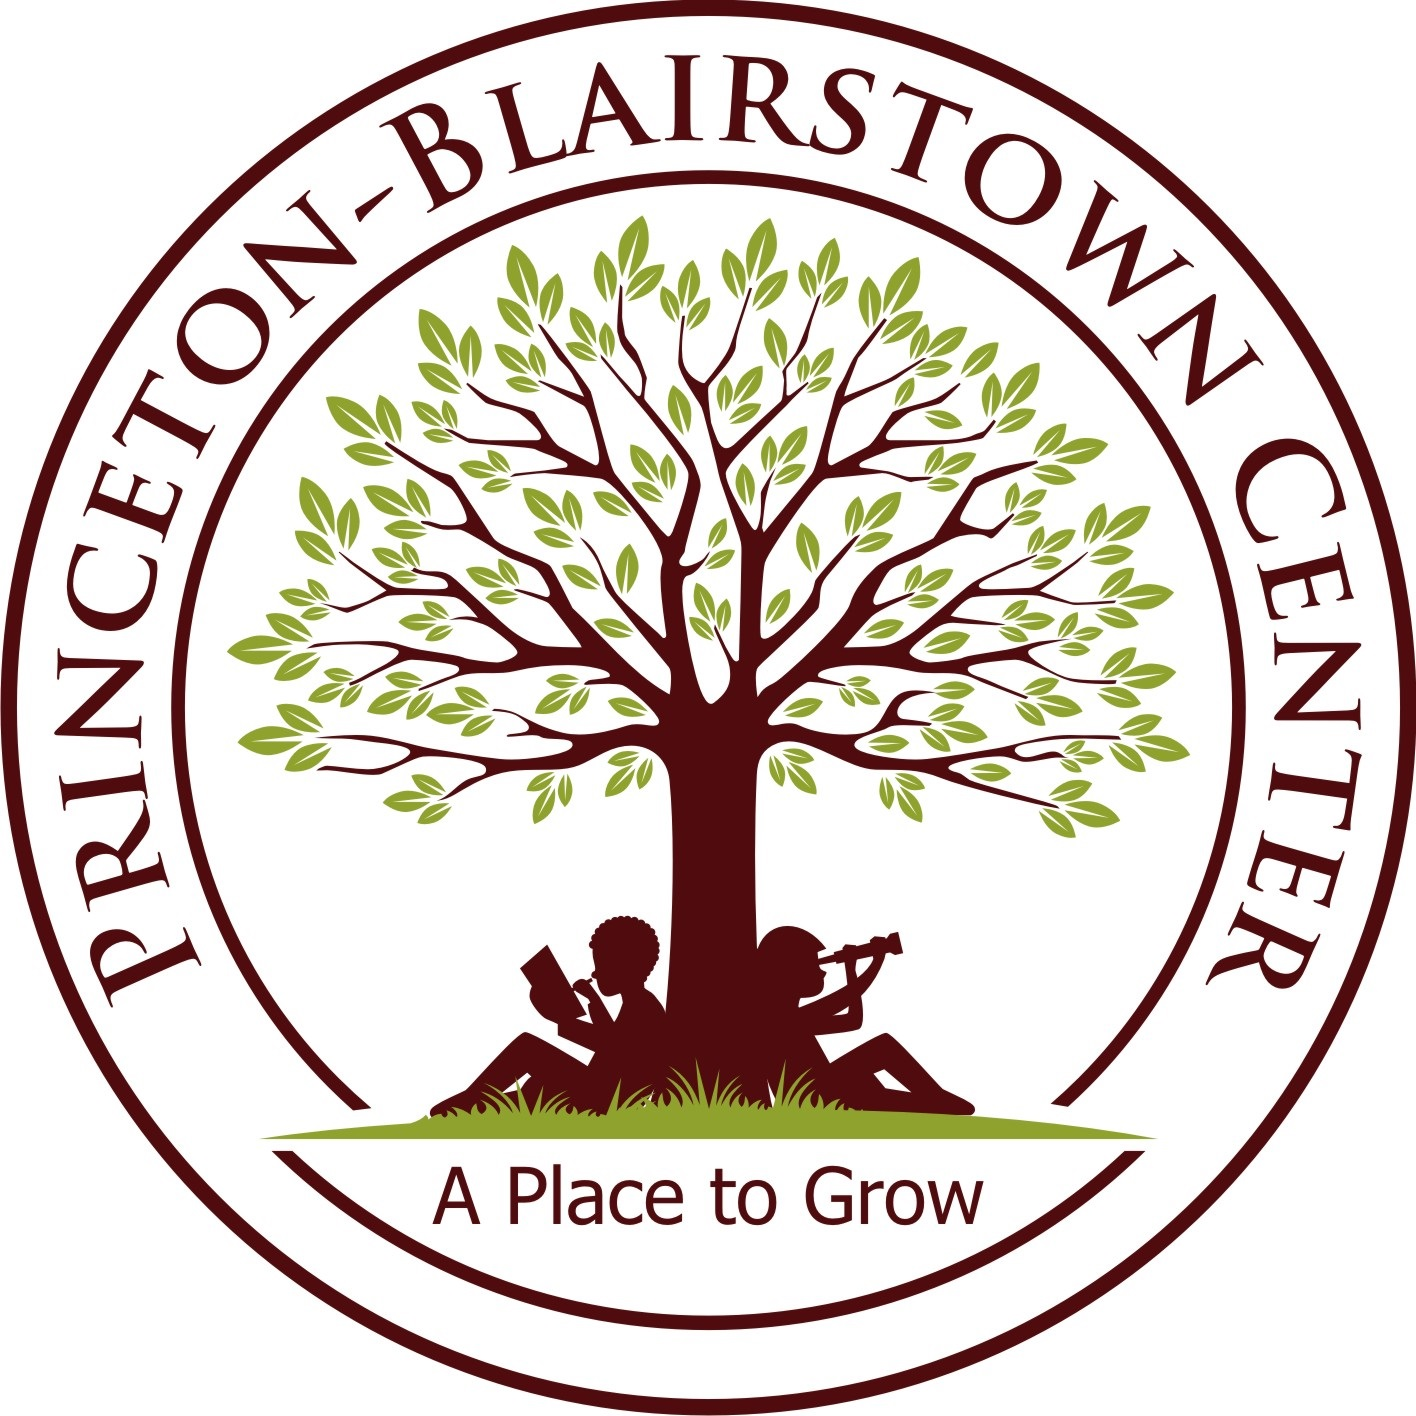 Princeton-Blairstown Center